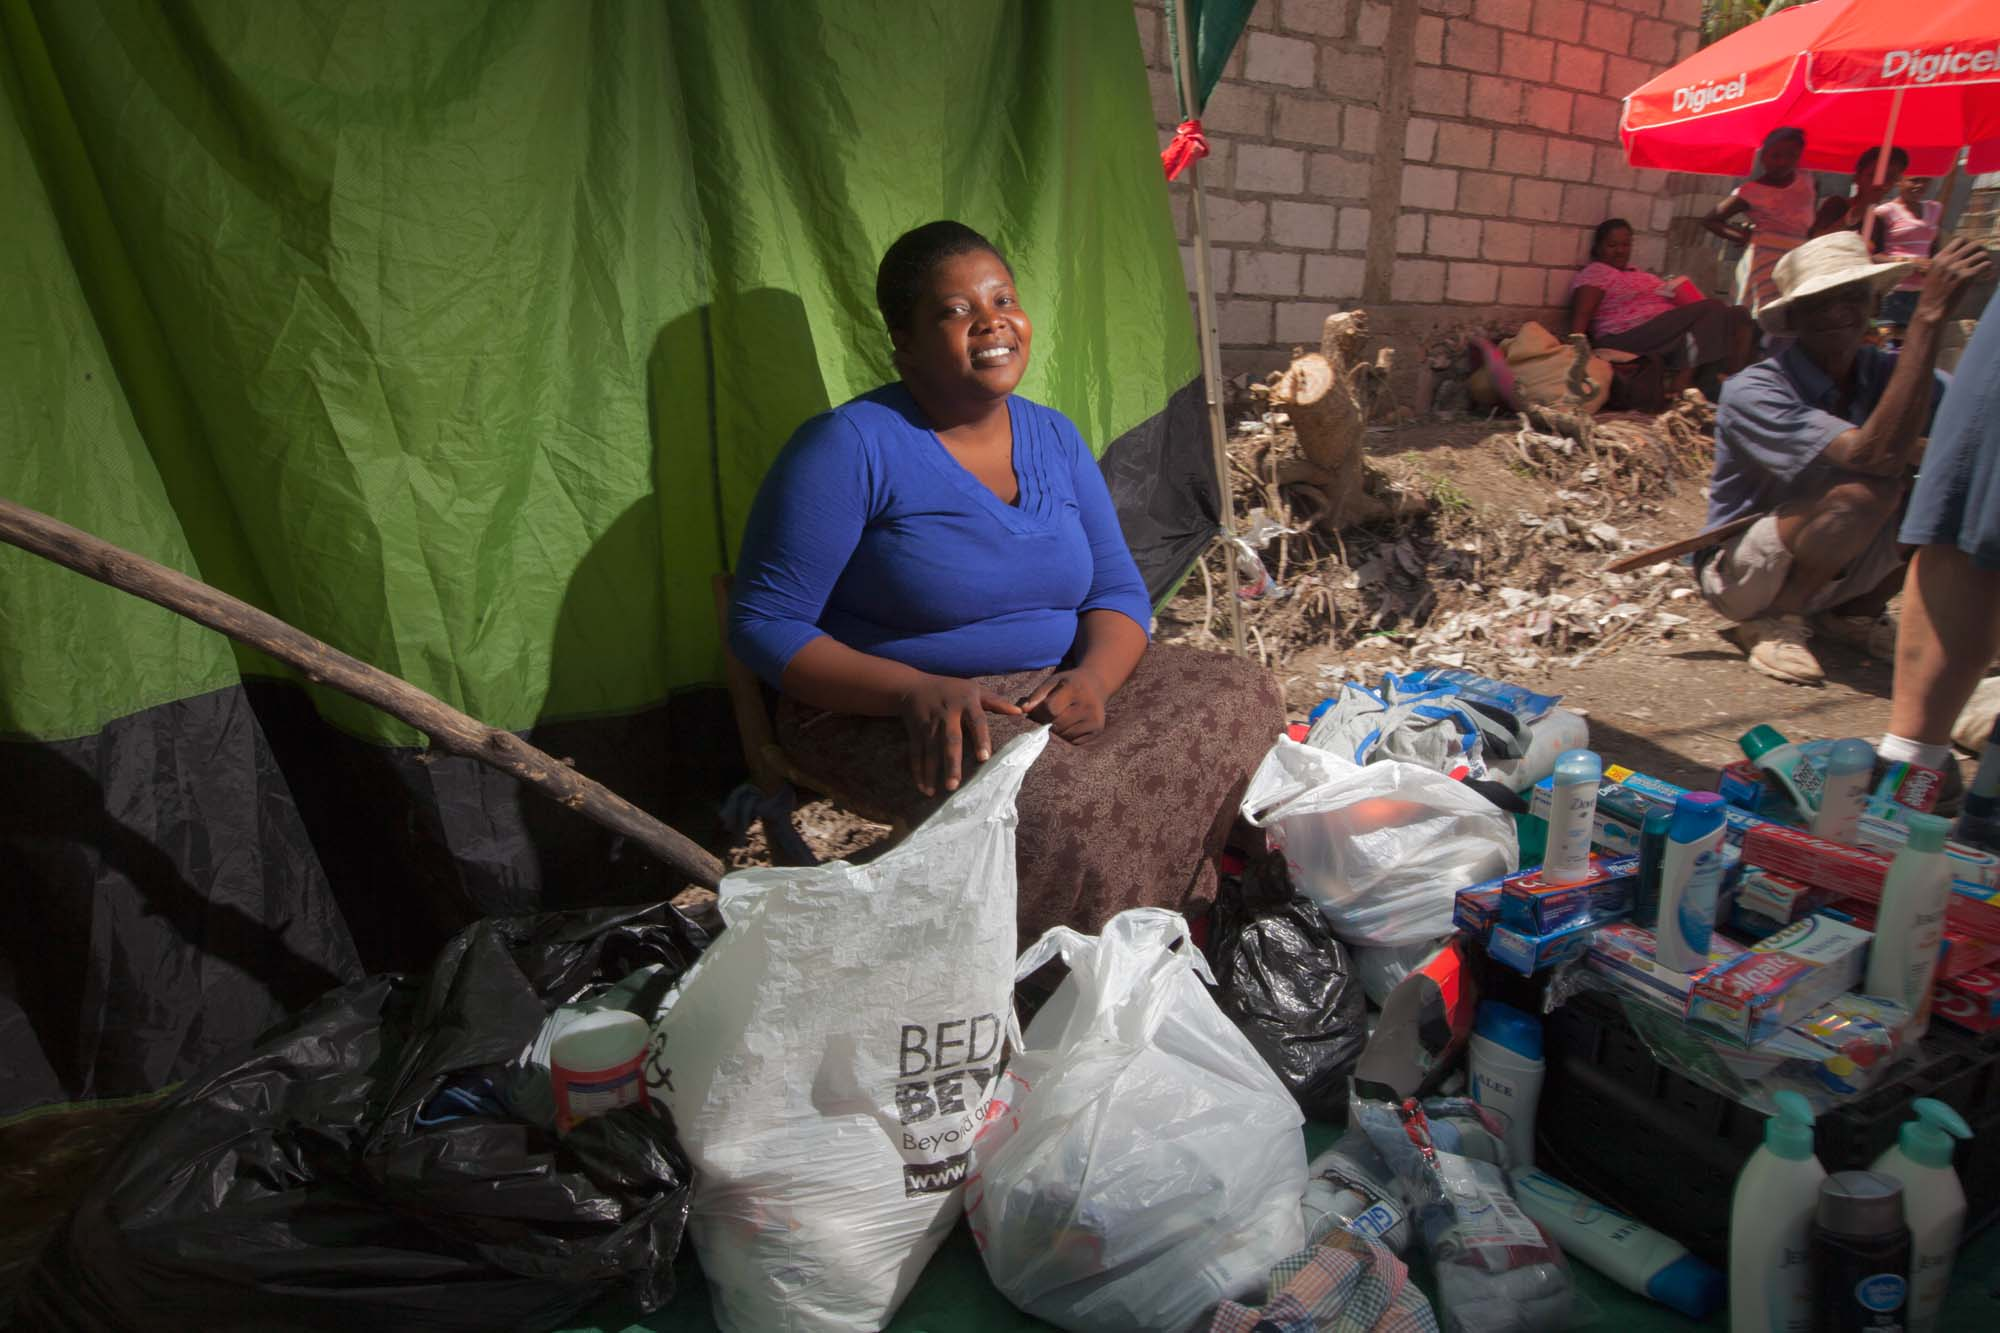 A smiling women sits surrounded by items for sale.